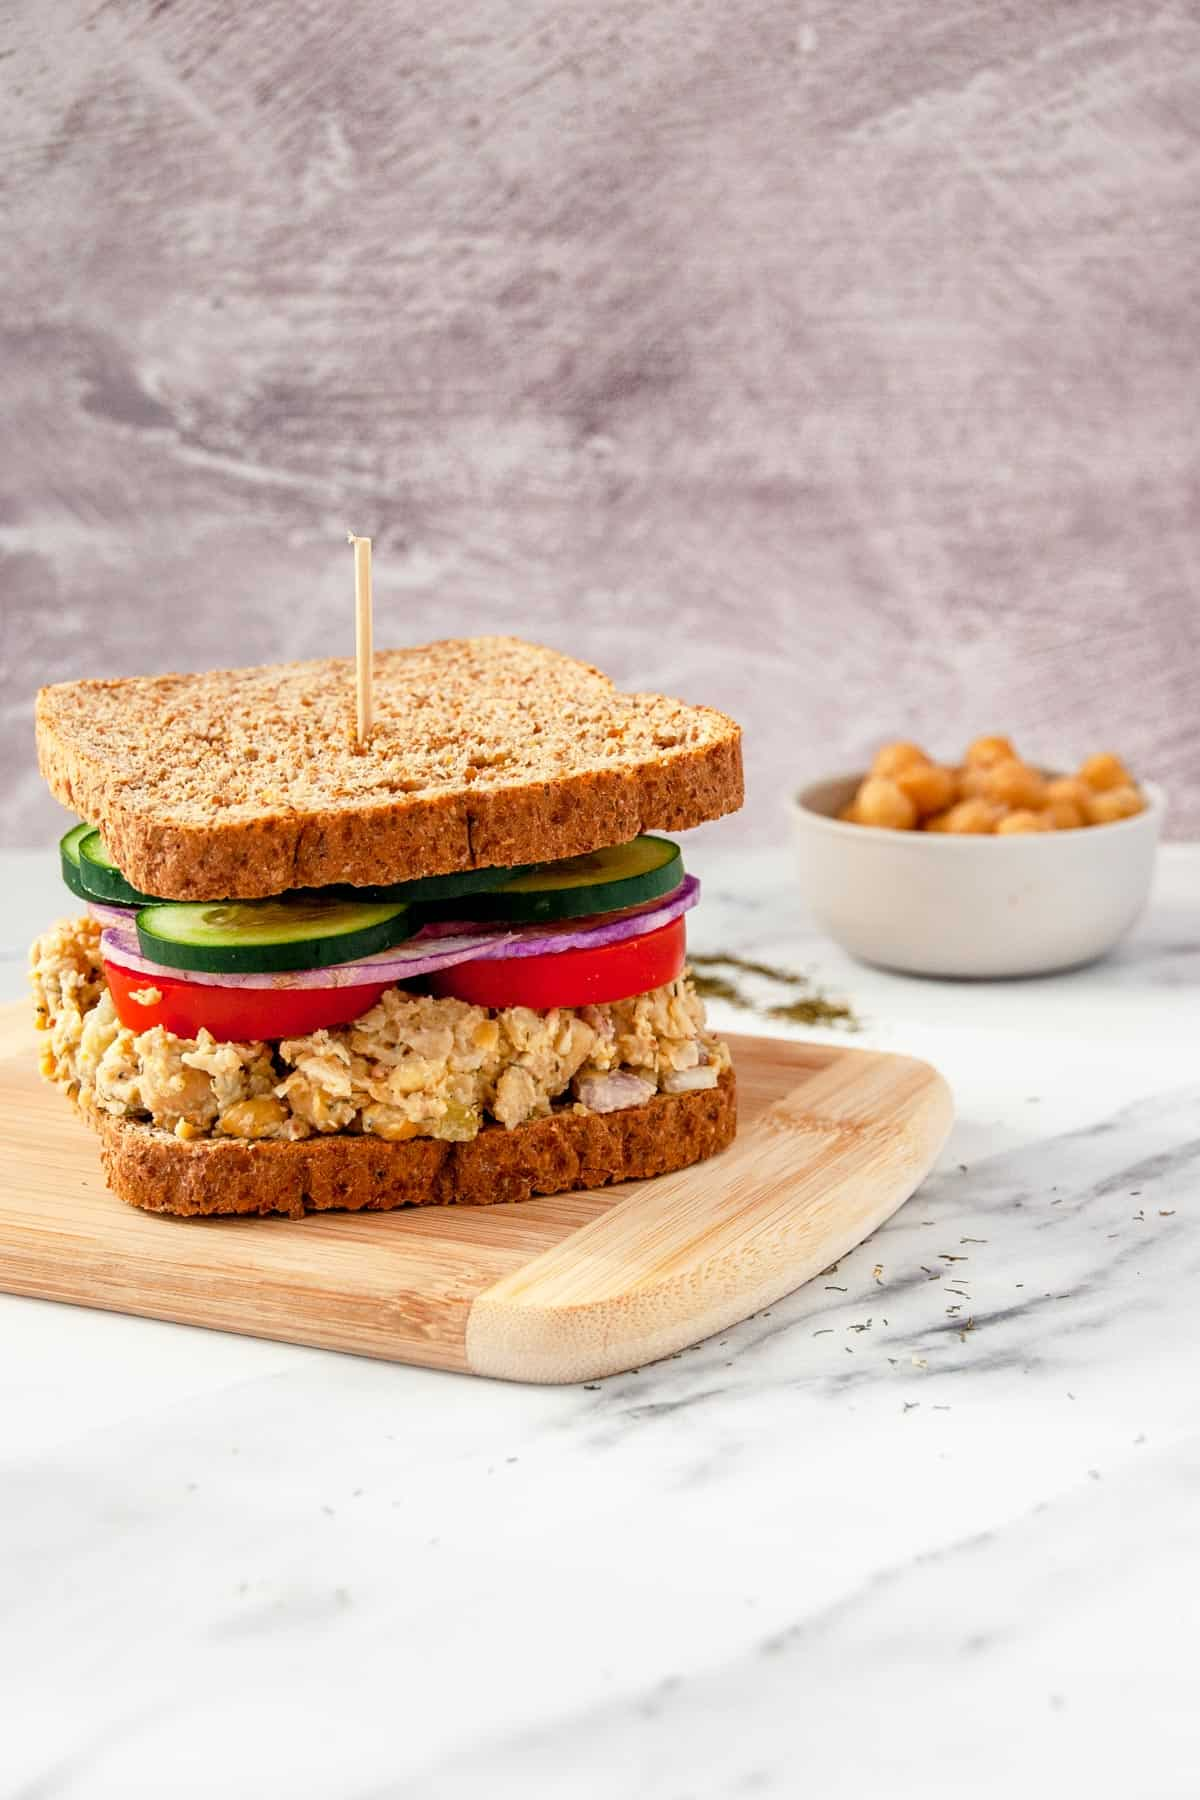 Vegan chickpea salad sandwich on whole grain bread with sliced vegetables piled on top